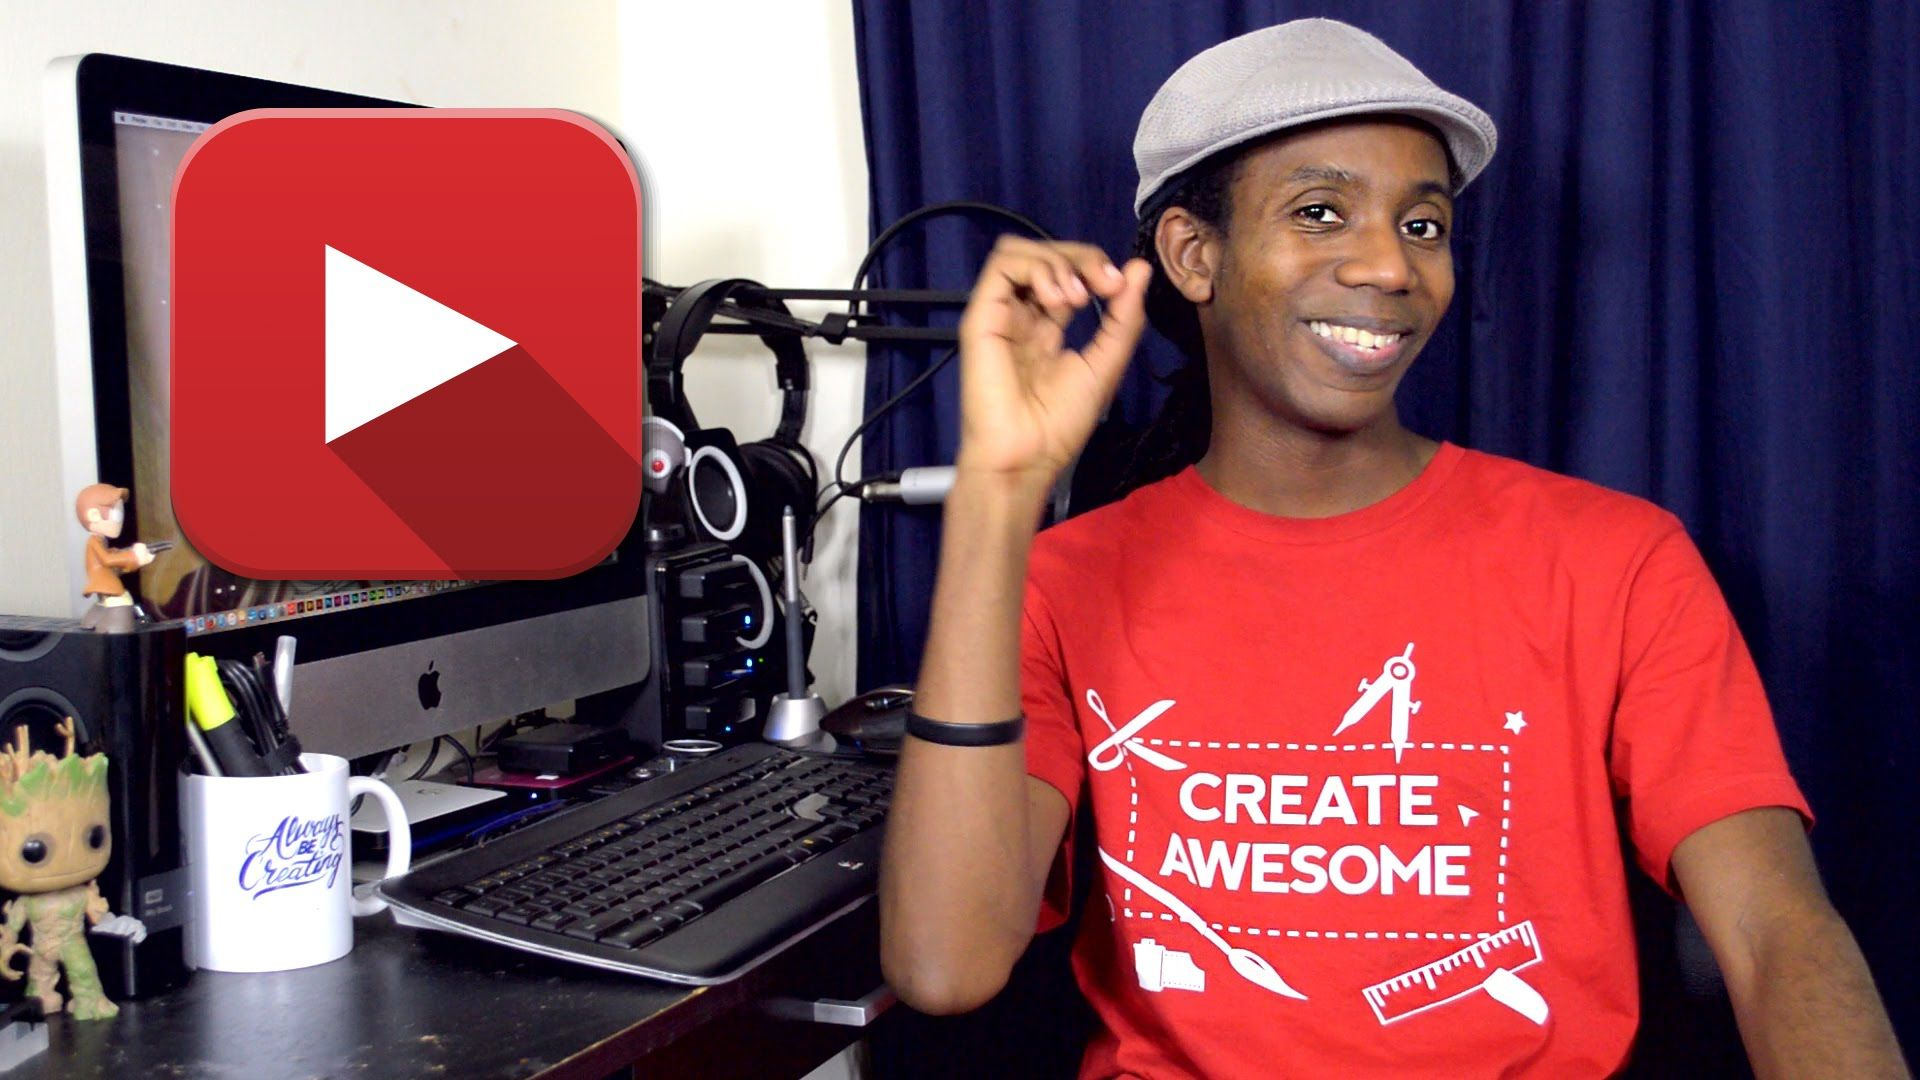 How To Get More YouTube Subscribers 2015 Getting More YouTube Subscribers is the thing I get asked the most about on this entire channel.  If You Want To Get More YouTube Subscribers you need to understand why someone should subscribe to your channel. If you can answer what someone get's out of becoming your subscriber you are not going to get more subscribers to your channel.  Here is My Free Email Course on Growing a YouTube Channel http://bit.ly/AwesomeYTCourse  If it is not clear what…